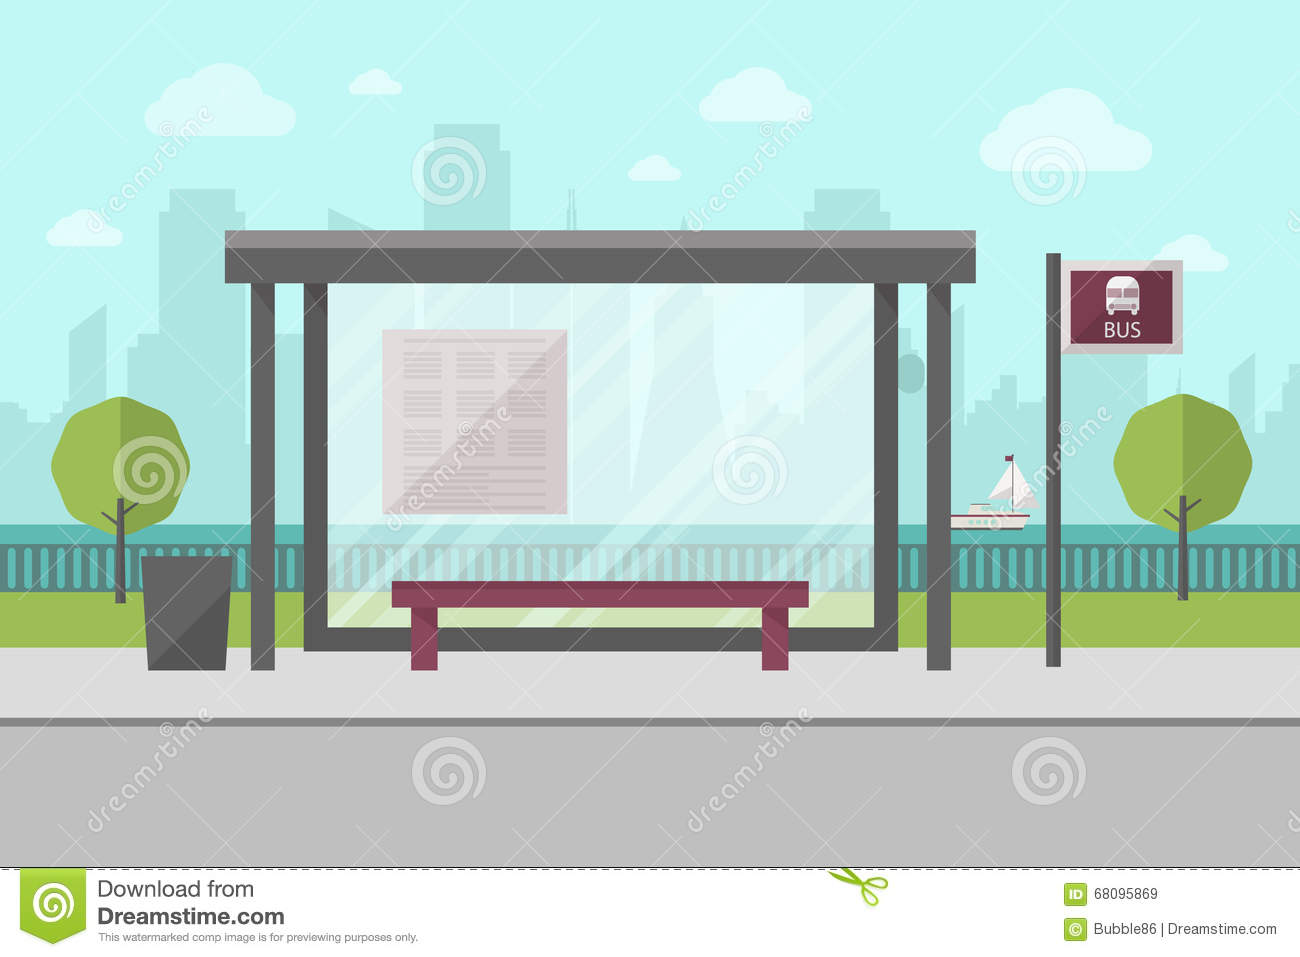 photo templates from stopdesign image info - vector illustration of bus stop with city skyline cartoon